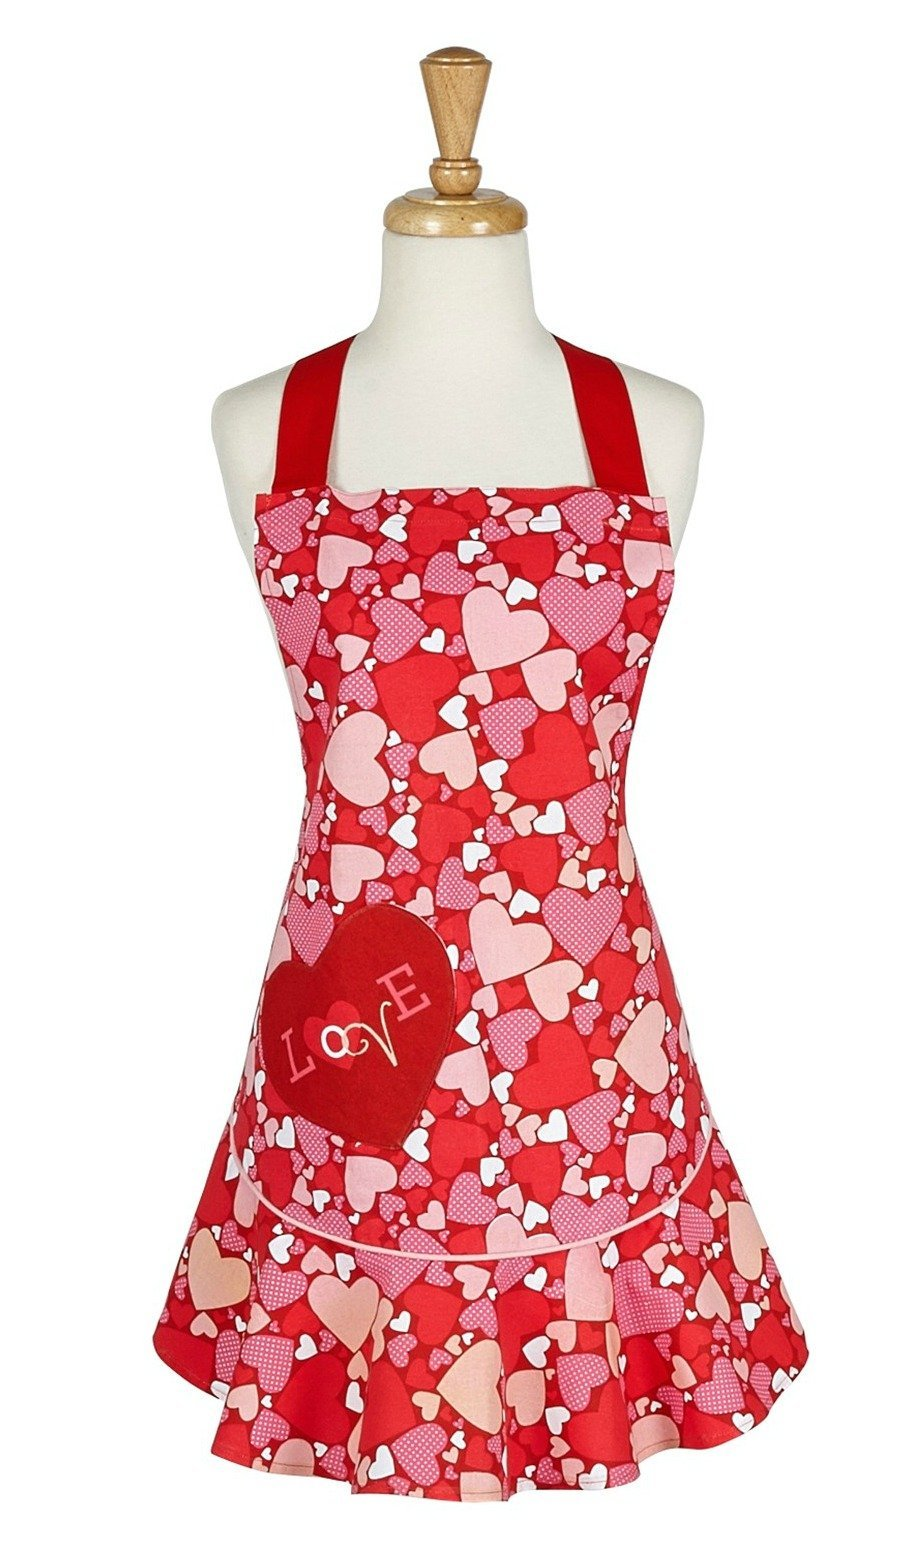 Design Imports Filled with Love Ruffle Apron